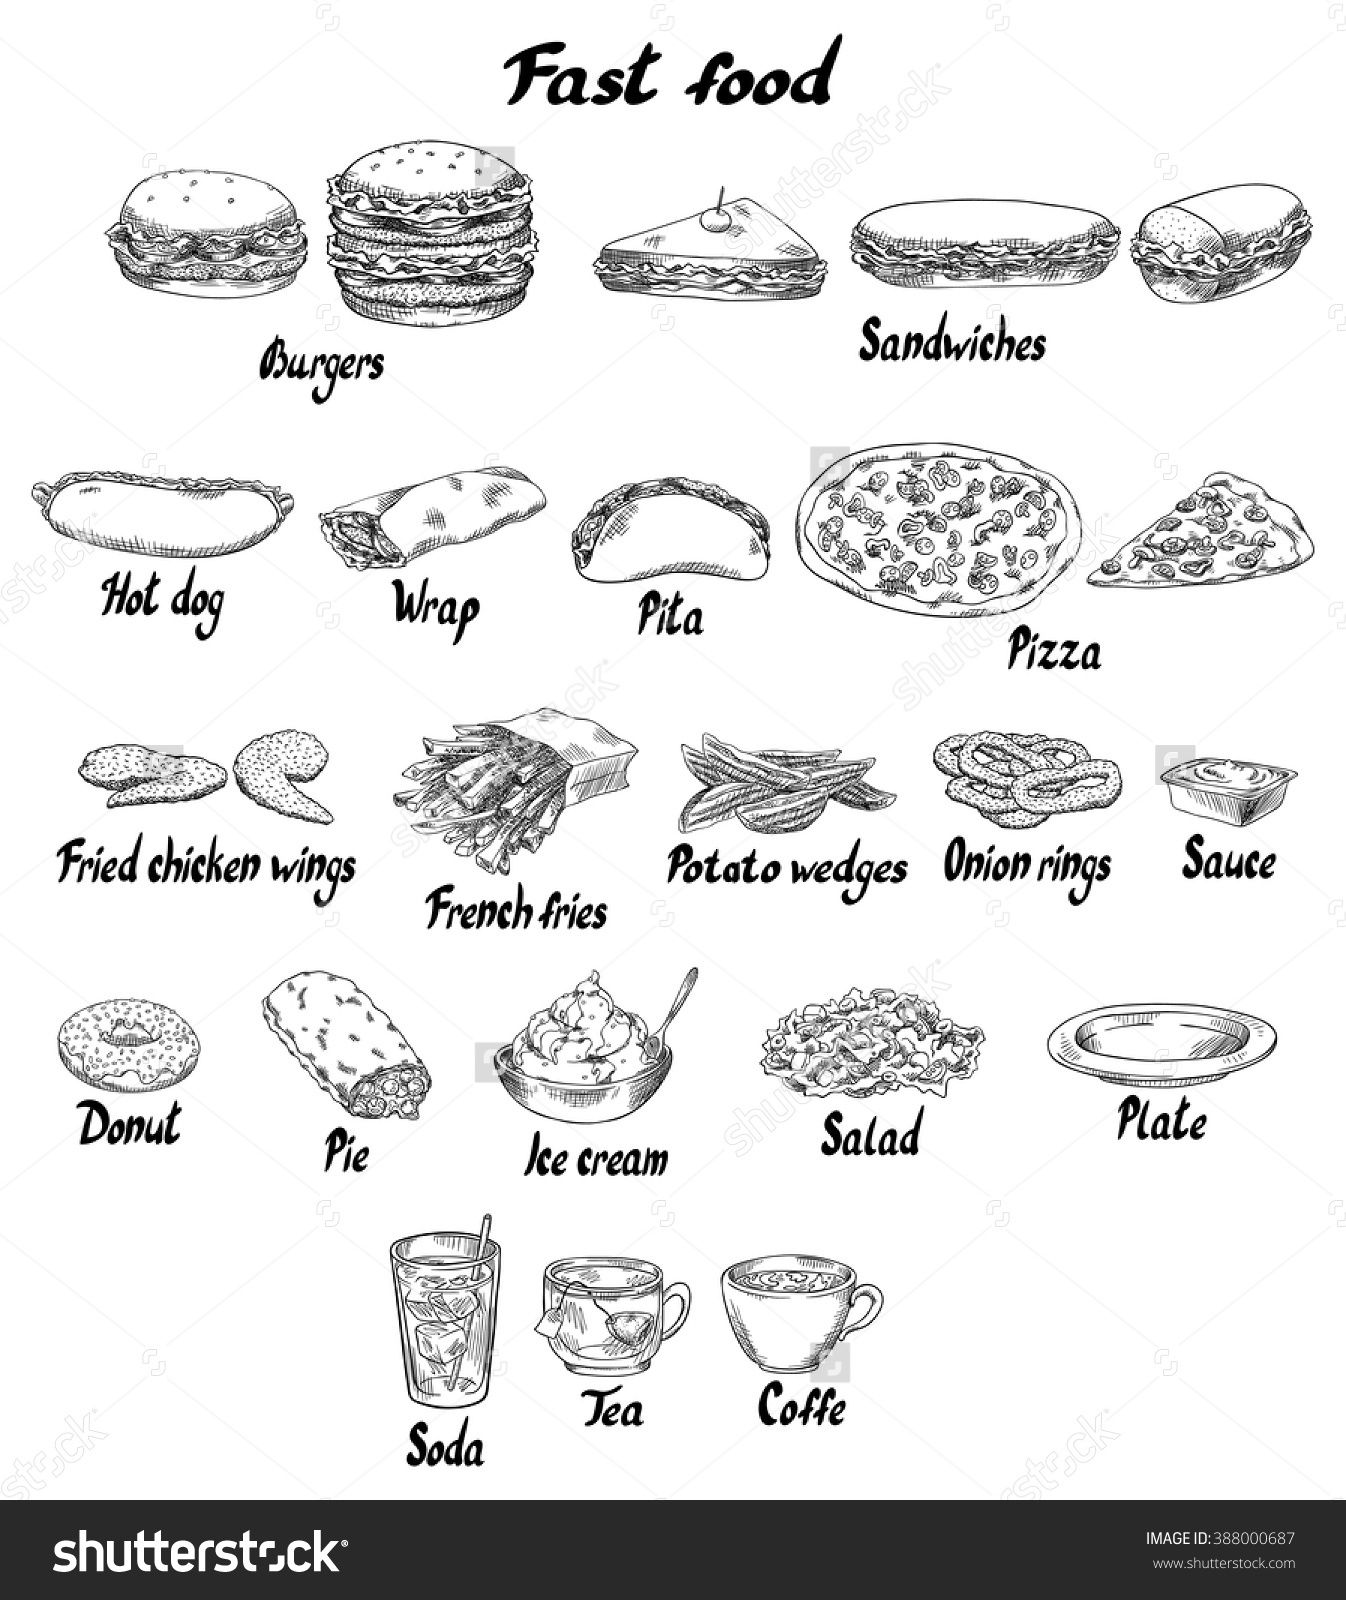 Burger Sandwich Hot Dog Wrap Pita Pizza Fried Chicken Wings French Fries Potato Wedges Onion Rings Sauce Donut Pie Ice Cream Salad Plate